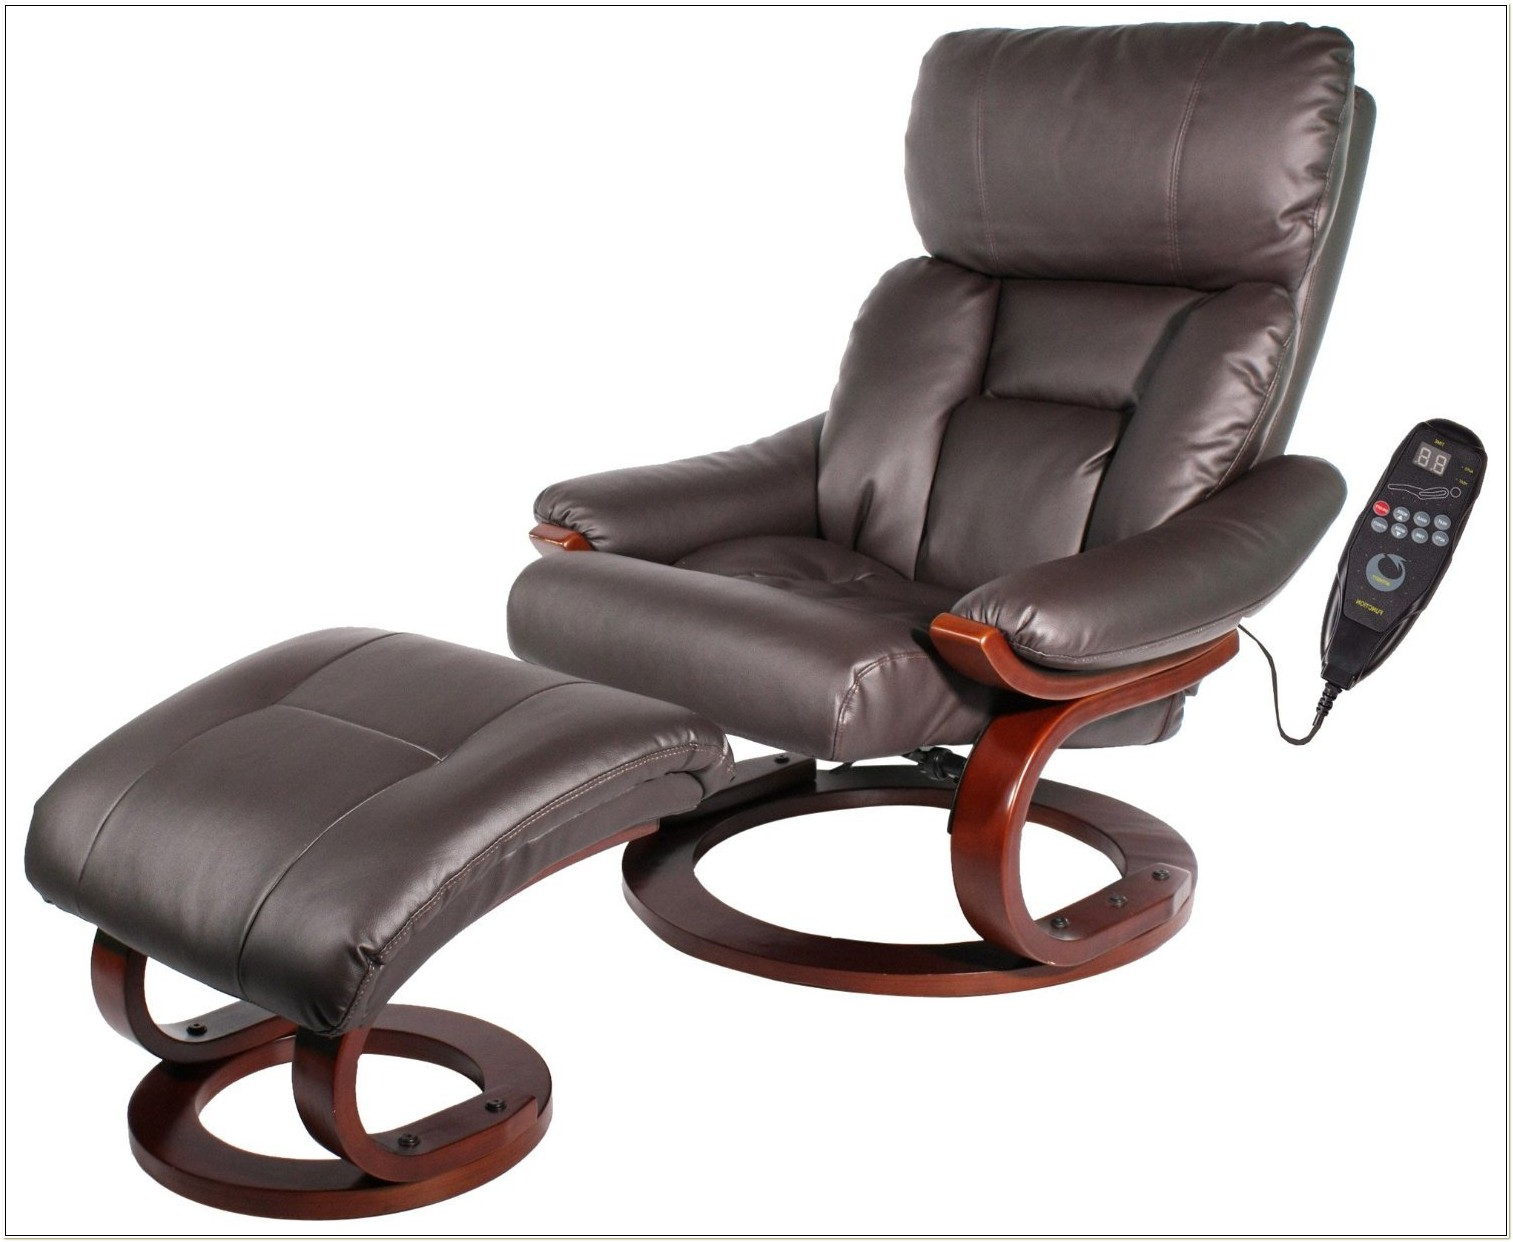 Heated Reclining Massage Chair With Ottoman